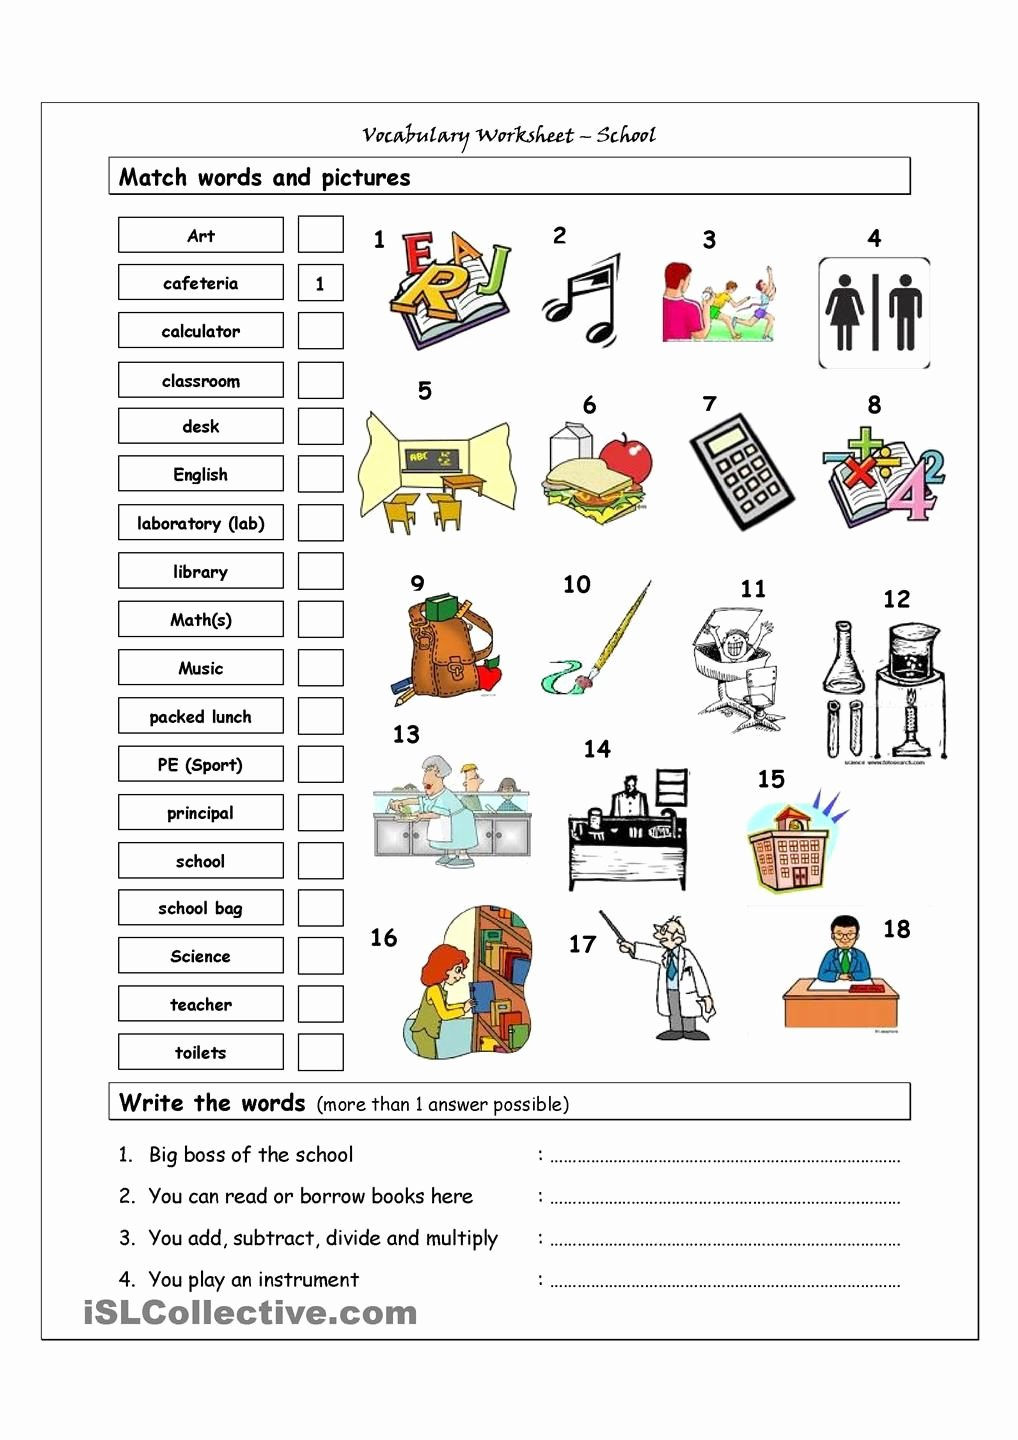 Vocabulary Worksheets for Preschoolers Free Vocabulary Matching Worksheet School Academic Worksheets